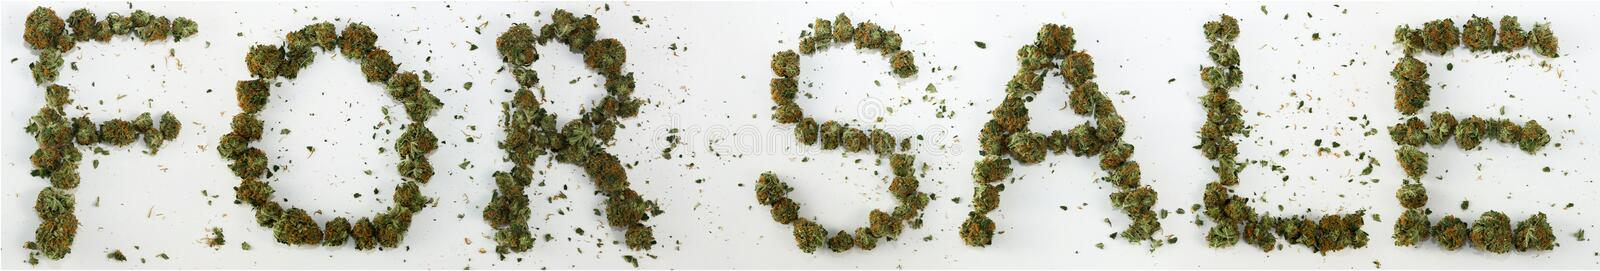 For Sale Spelled With Marijuana stock image